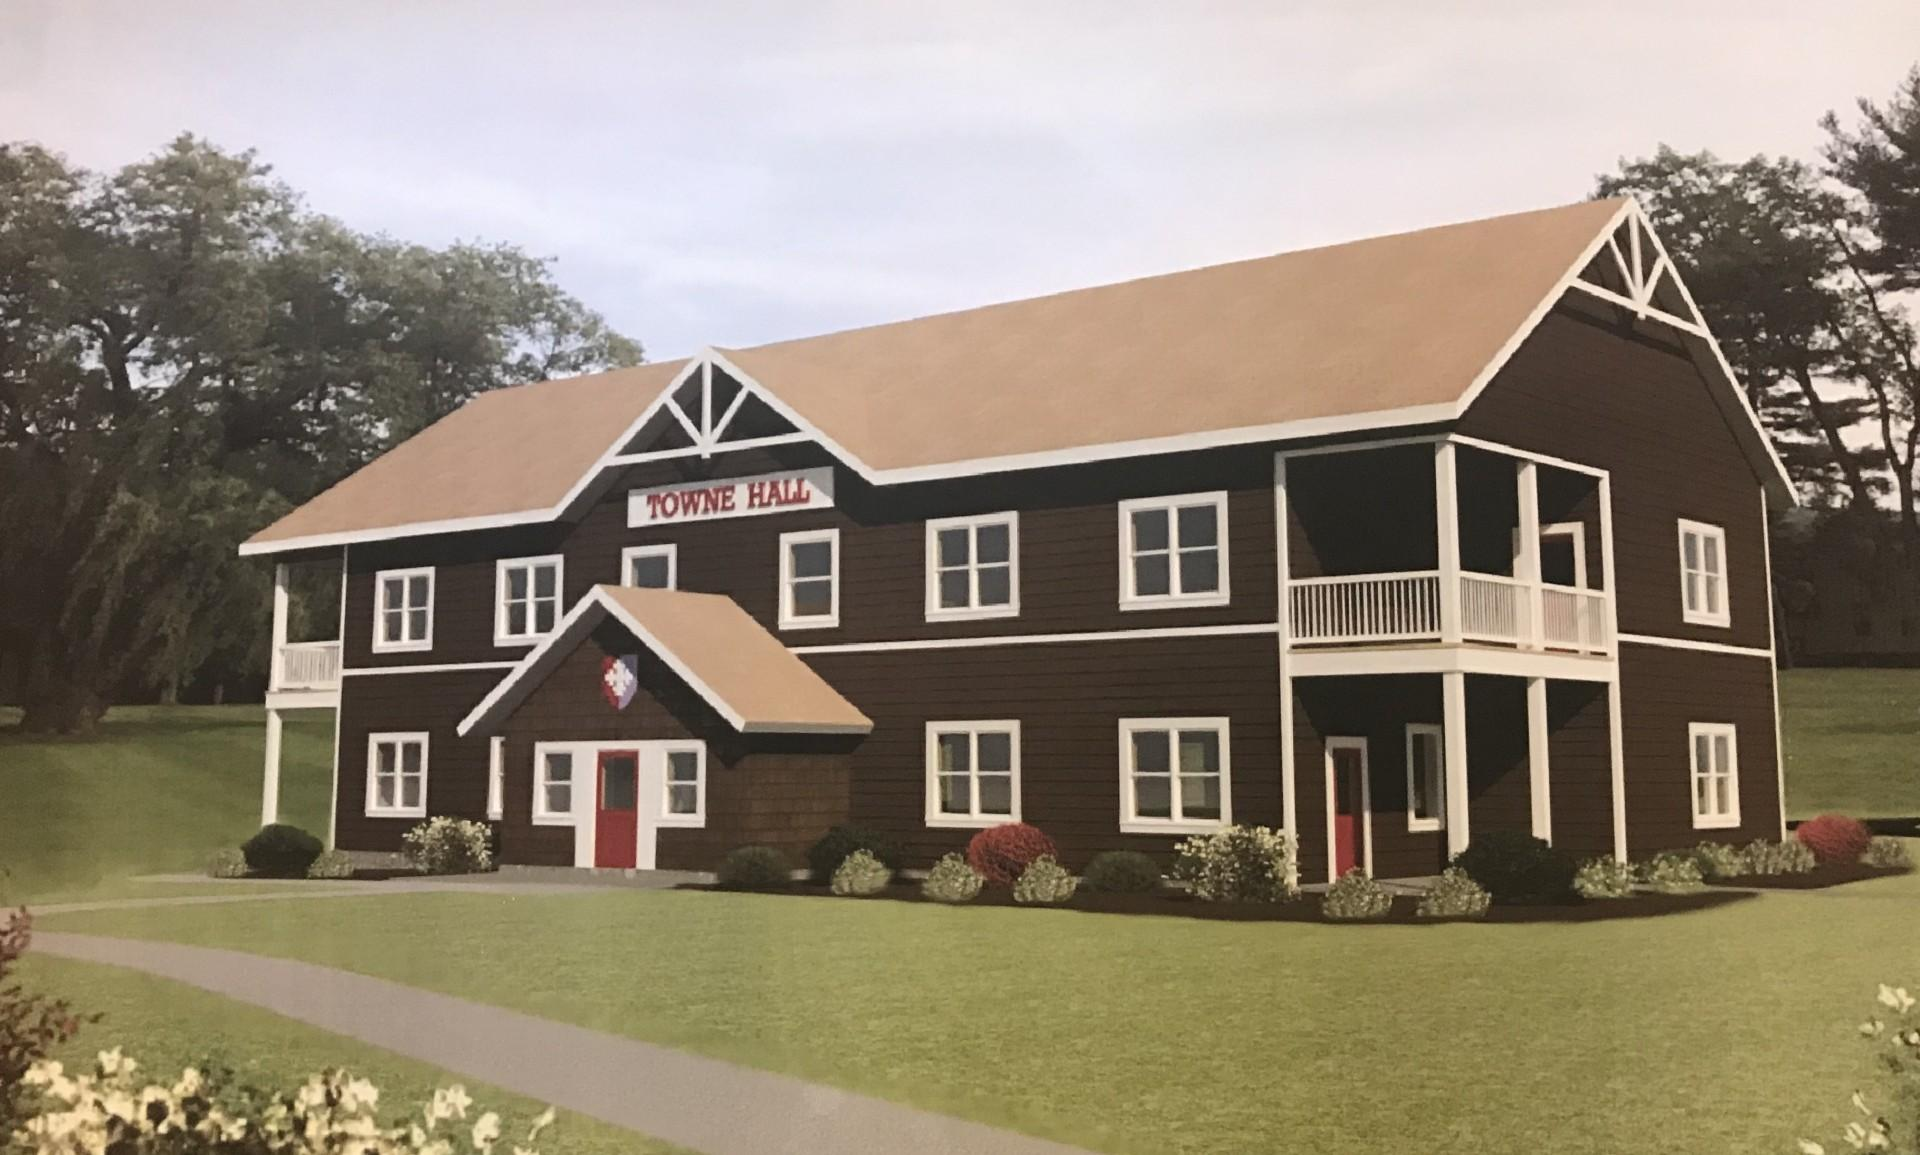 Towne Hall girls dorm building 3-D rendering